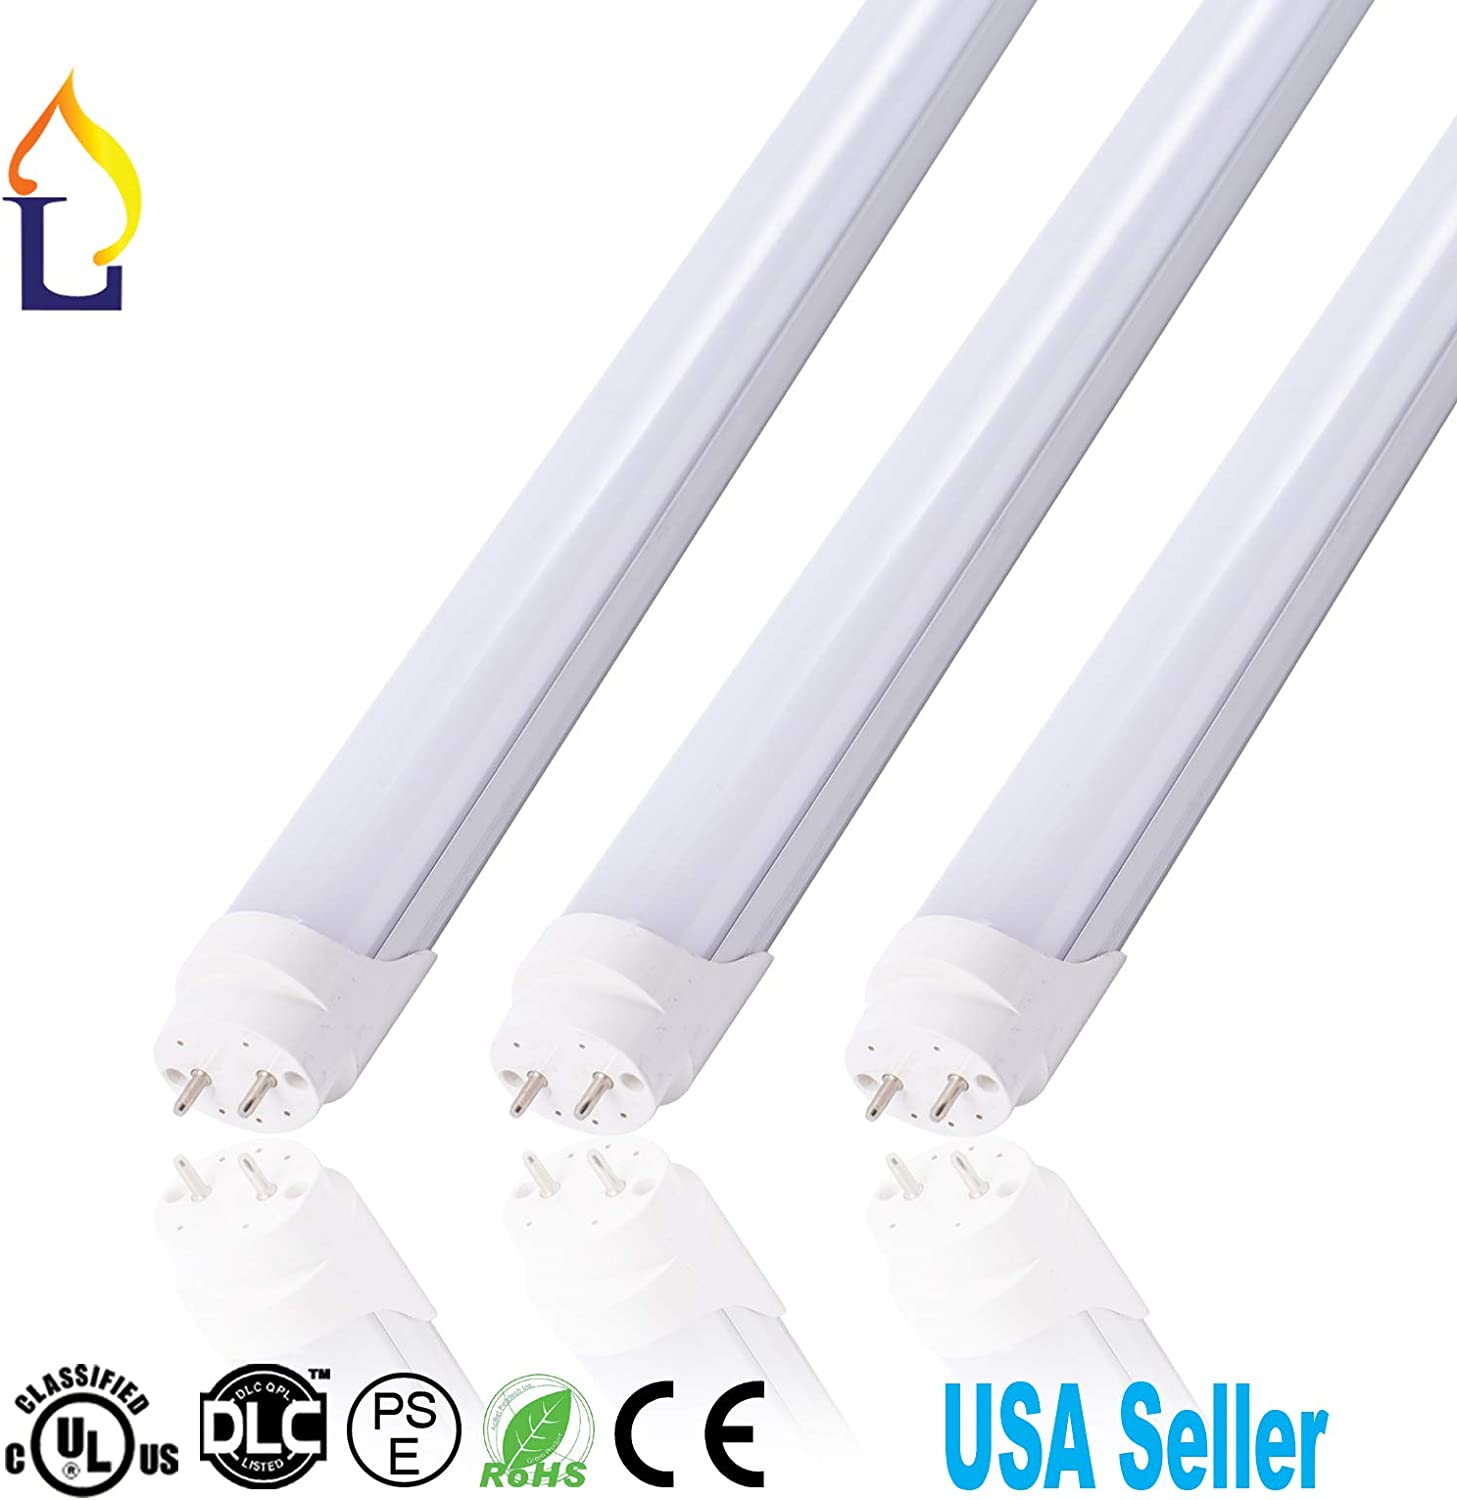 White, Milky Cover 15 Pack UL DLC Listed 4FT T8 Tube Light 18W with G13 Base Ballast Bypass Indoor 5 Years Warranty 4 Foot LED Under Cabinet Lamp